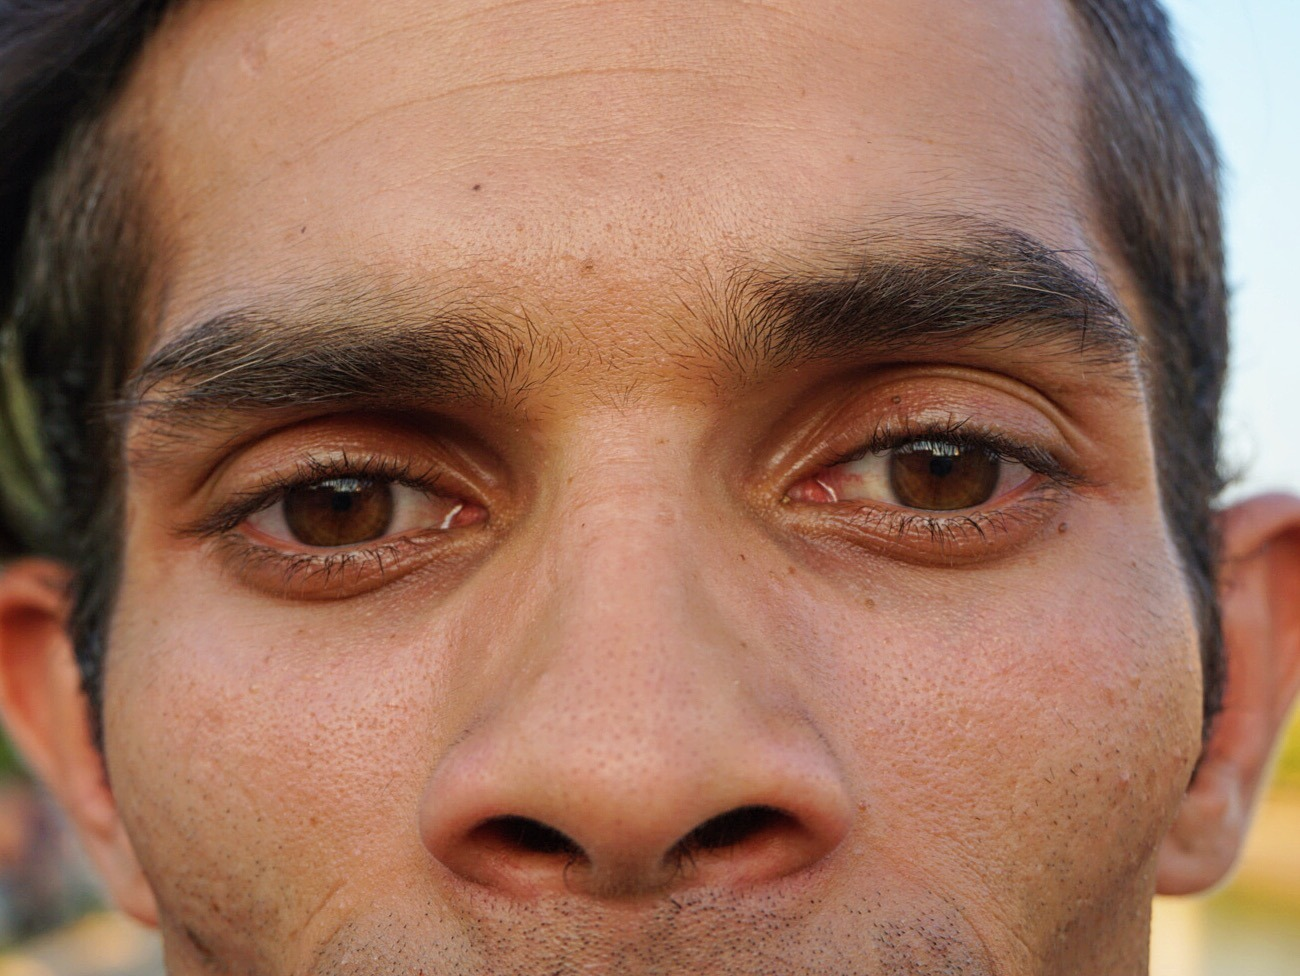 close-up of eyes of a local man in Romania